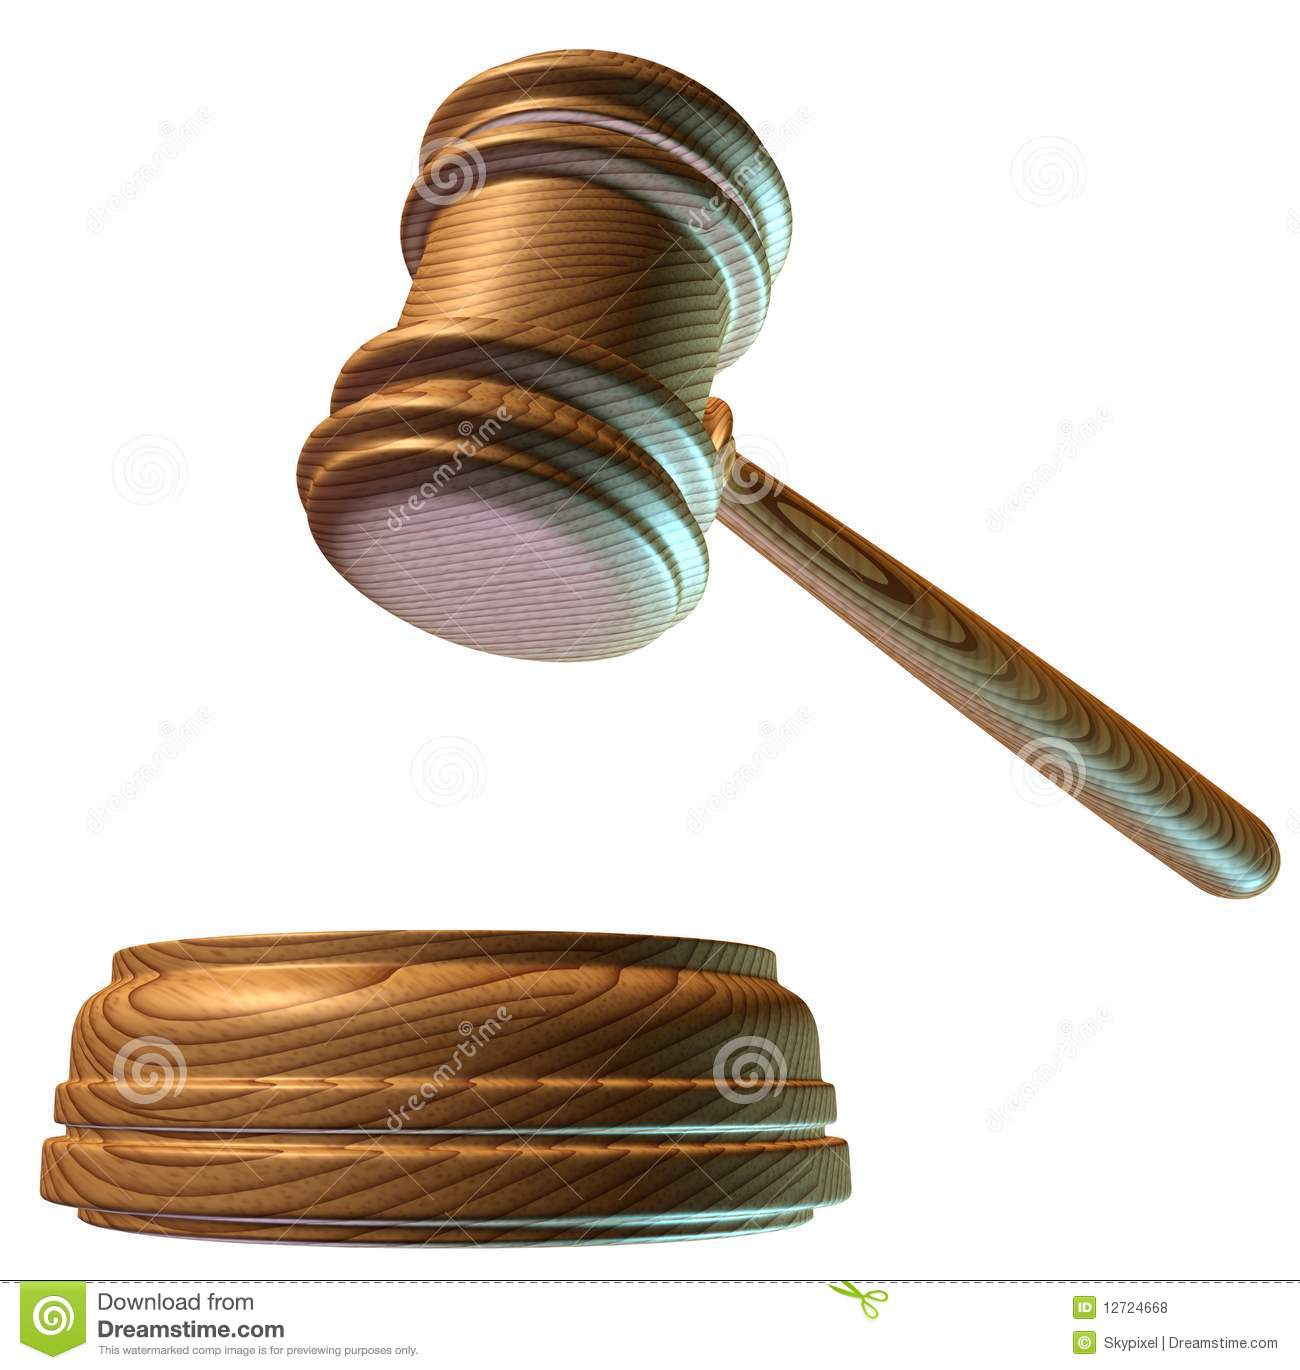 Judgment Mallet Royalty Free Stock Photos